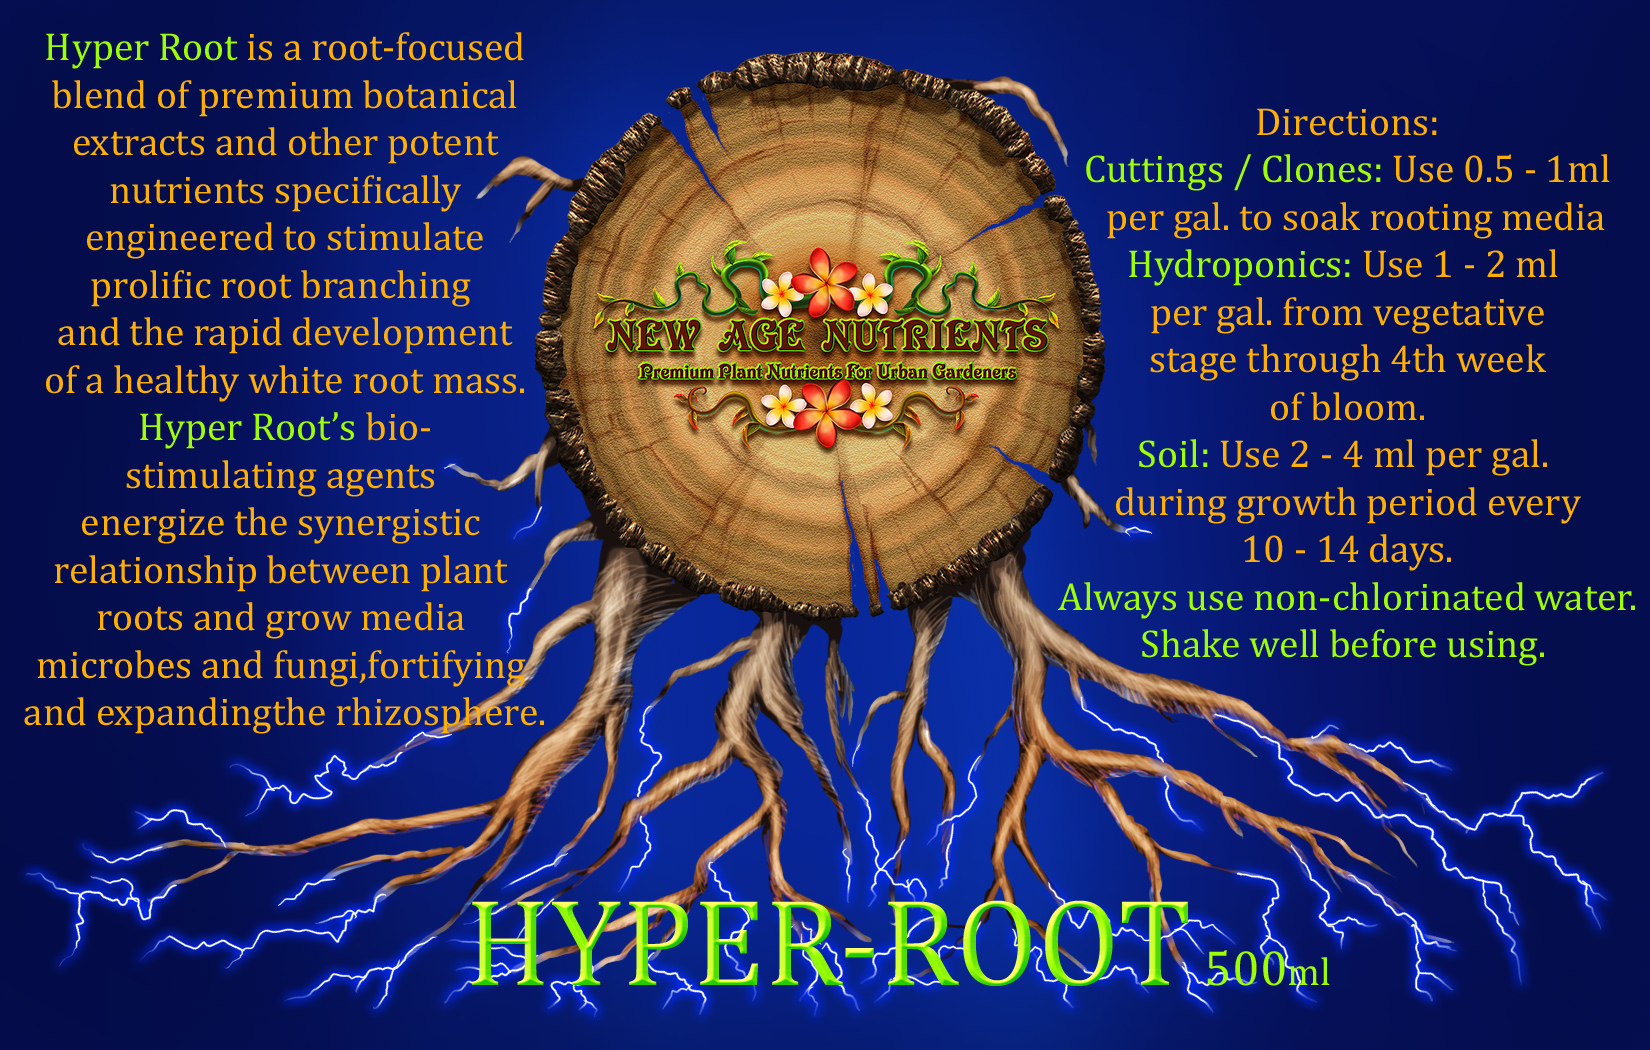 Hyper Root Label Blue Background